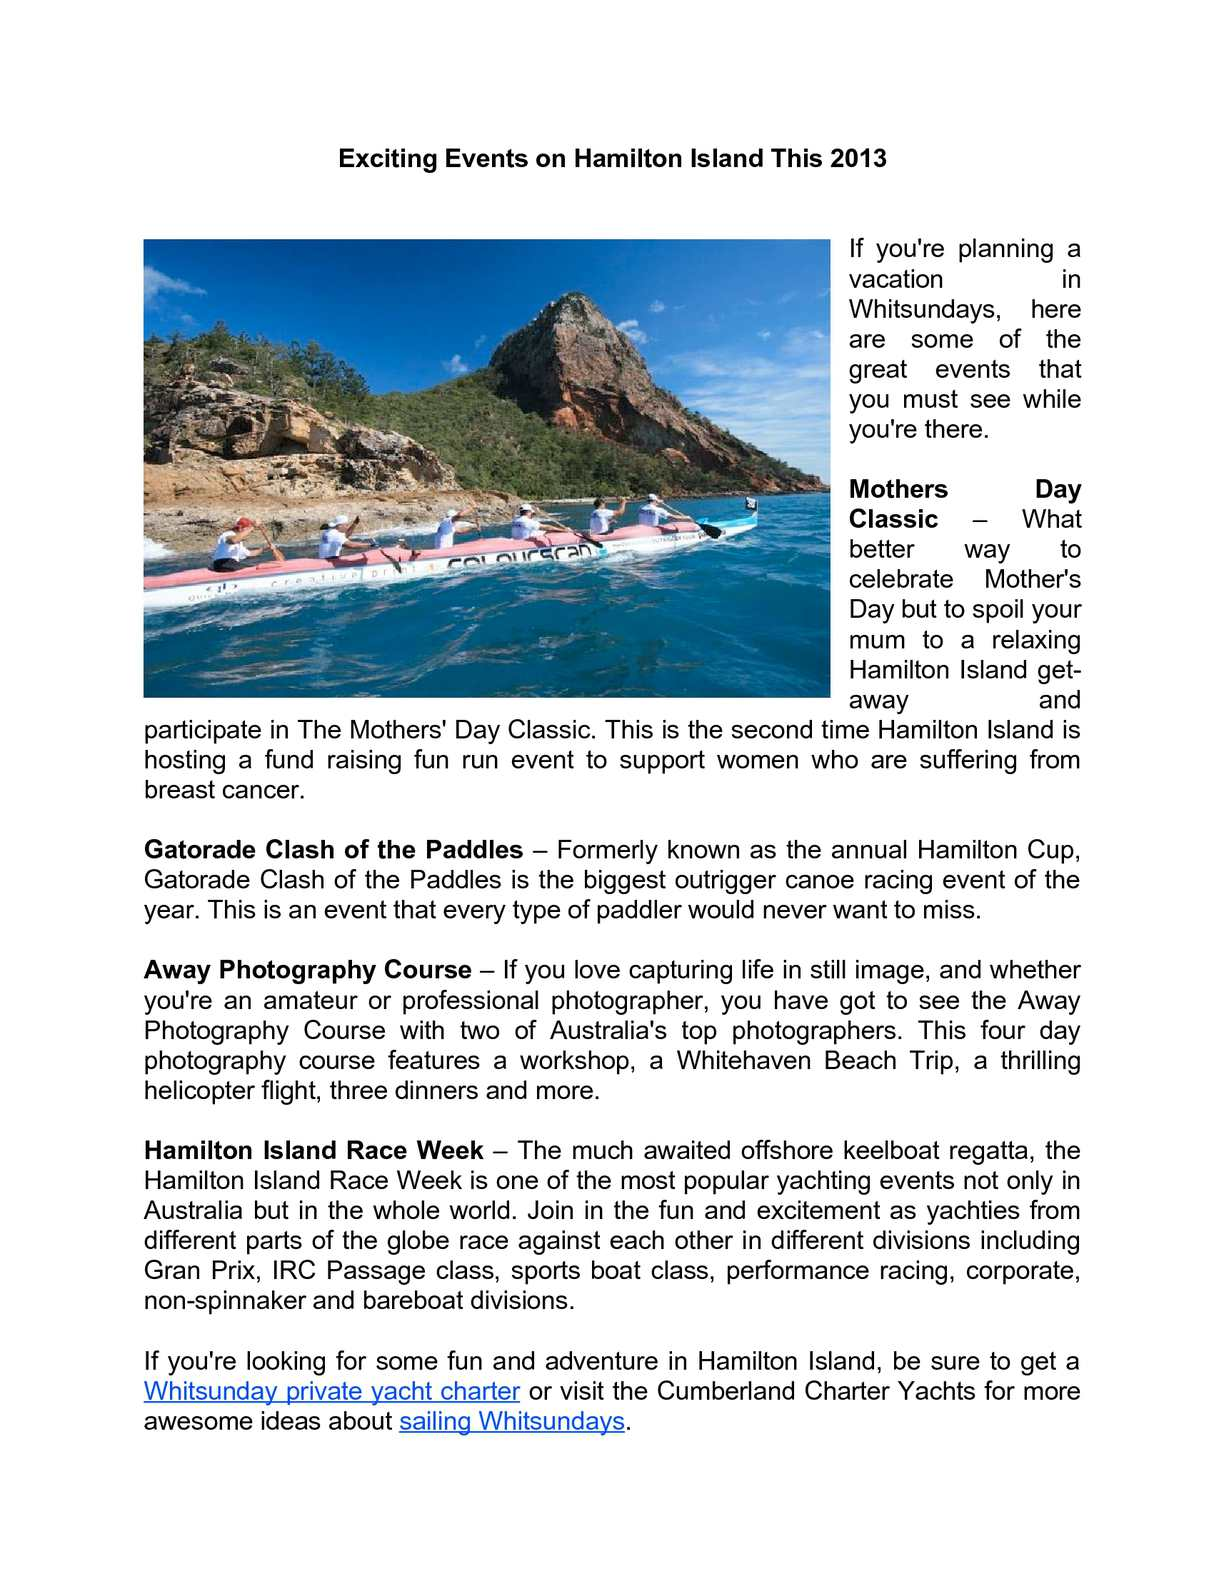 Calaméo - Exciting Events on Hamilton Island To Watch Out